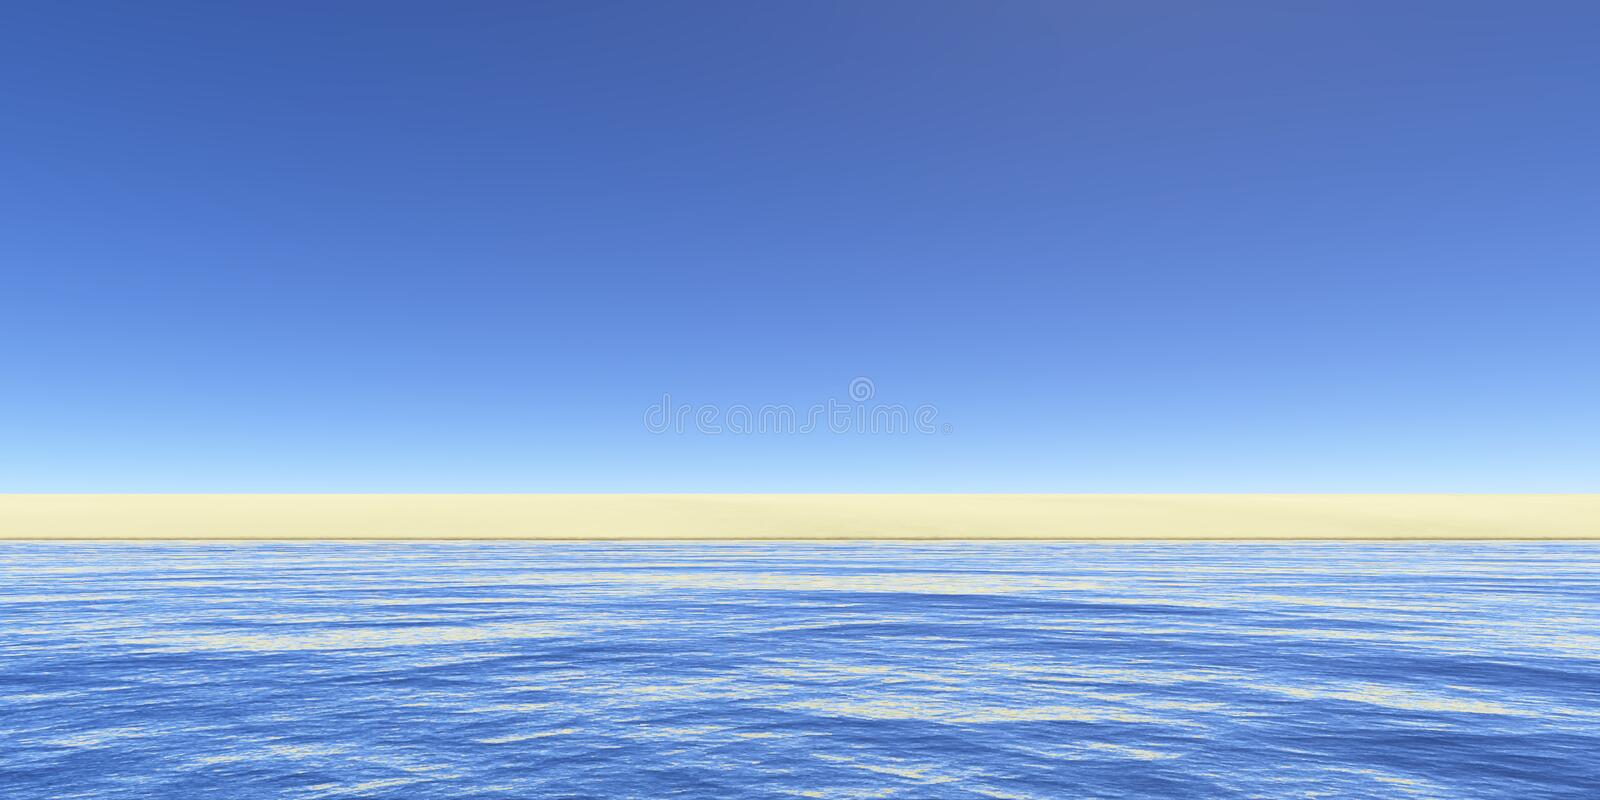 Download To the perfect beach stock illustration. Image of water - 579426